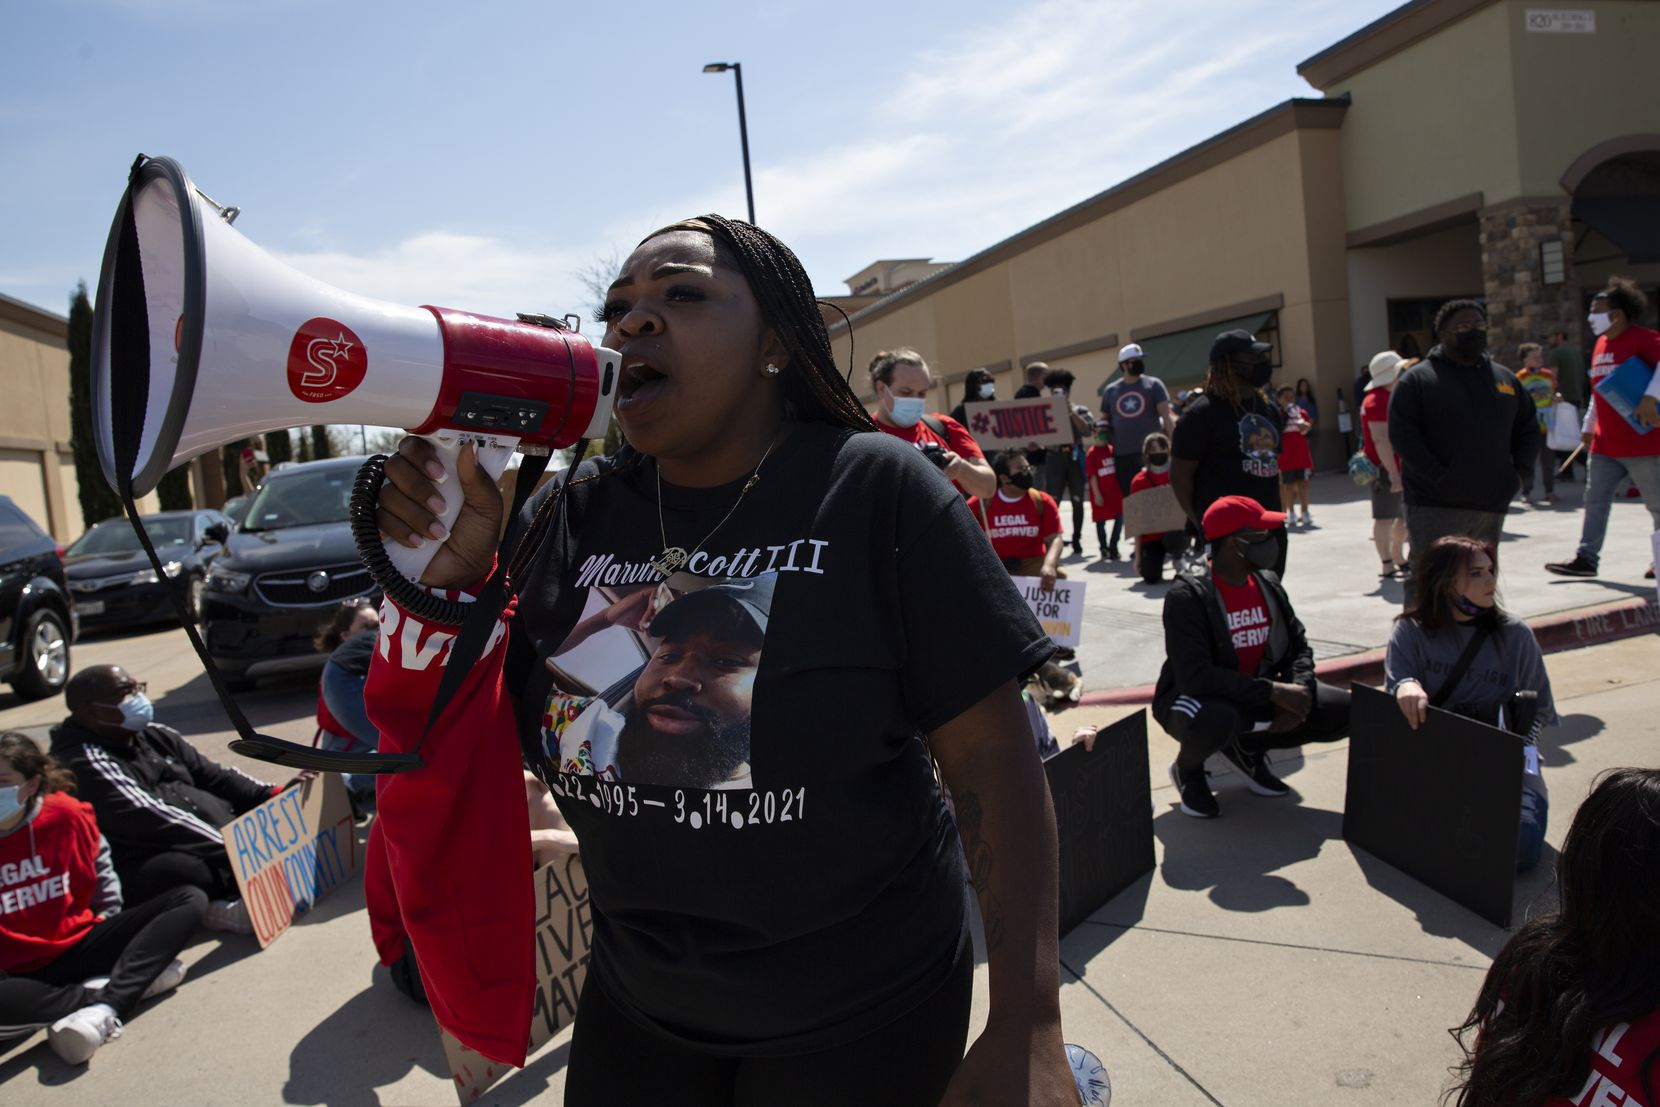 LaChay Batts encourages demonstrators to not engage with agitators frustrated with the traffic caused by a march through the Allen Outlets on Sunday, March 21, 2021. The march was organized to inform the community and demand justice for her brother Marvin Scott III, who died a week prior while in custody at the Collin County Jail on March 14, 2021. (Shelby Tauber/Special Contributor)